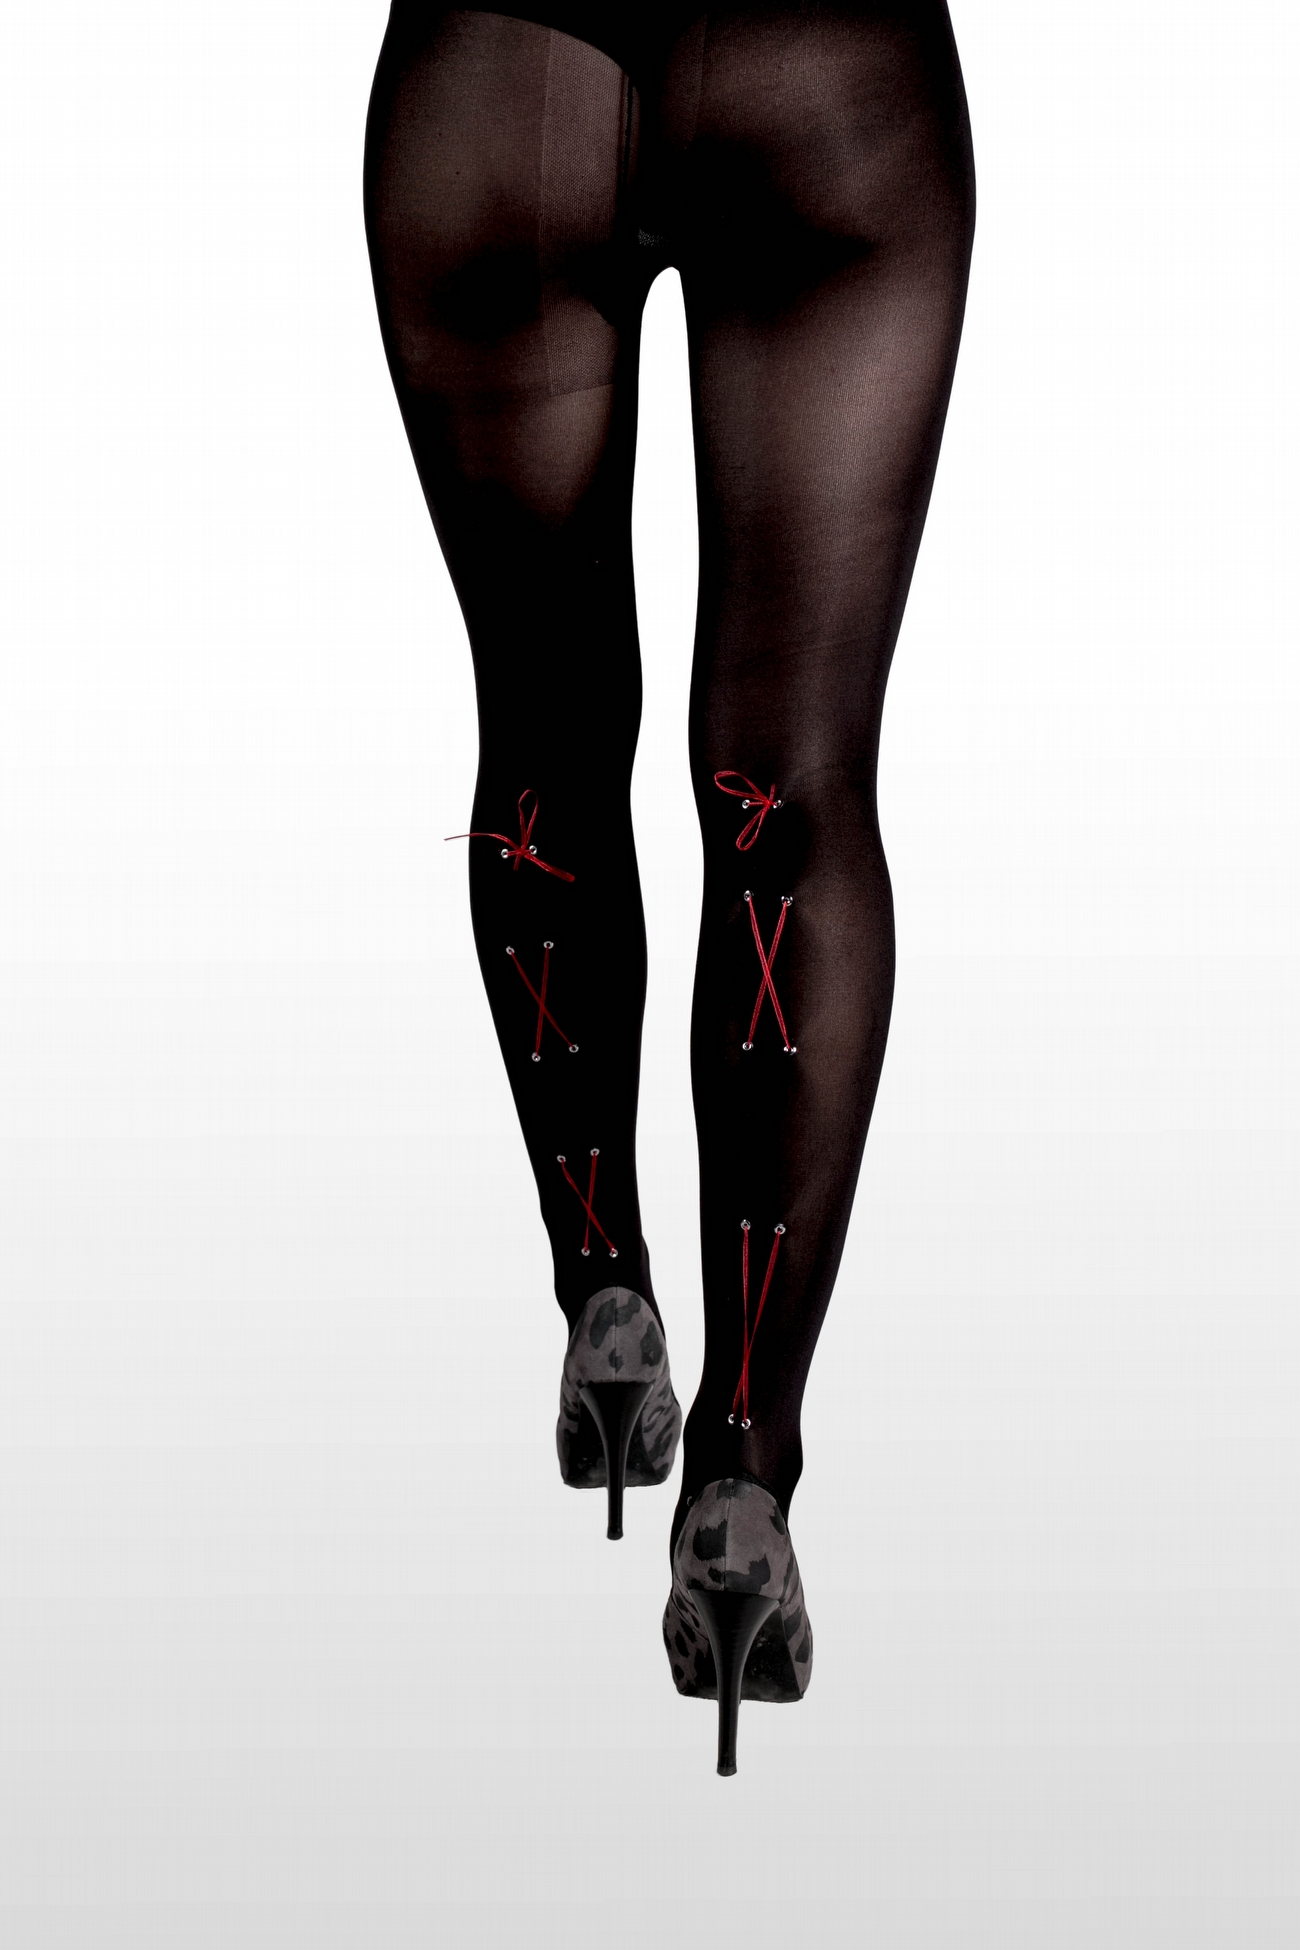 These includes tights such as backseam tights, lace tights, coloured tights and so many other patterns and motifs. If you can imagine it, it exists. We have been cultivating styles of hosiery at UK Tights for the past eleven years and we are increasing this collection each and every day. The most popular style of tights is perhaps coloured tights. Tights are so varied that each of the most popular designs only have .